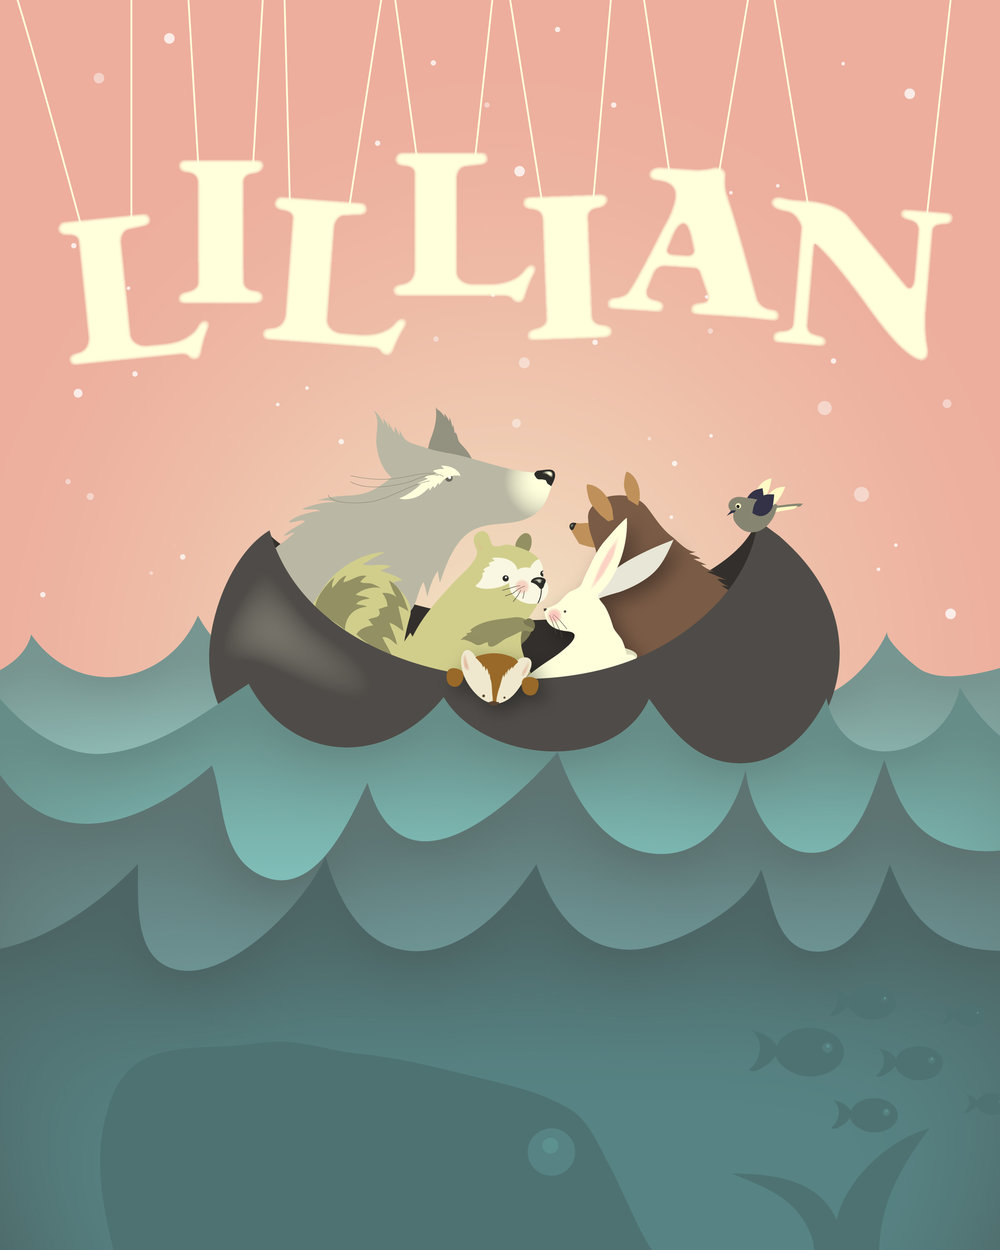 sea creatures lillian-01.jpg